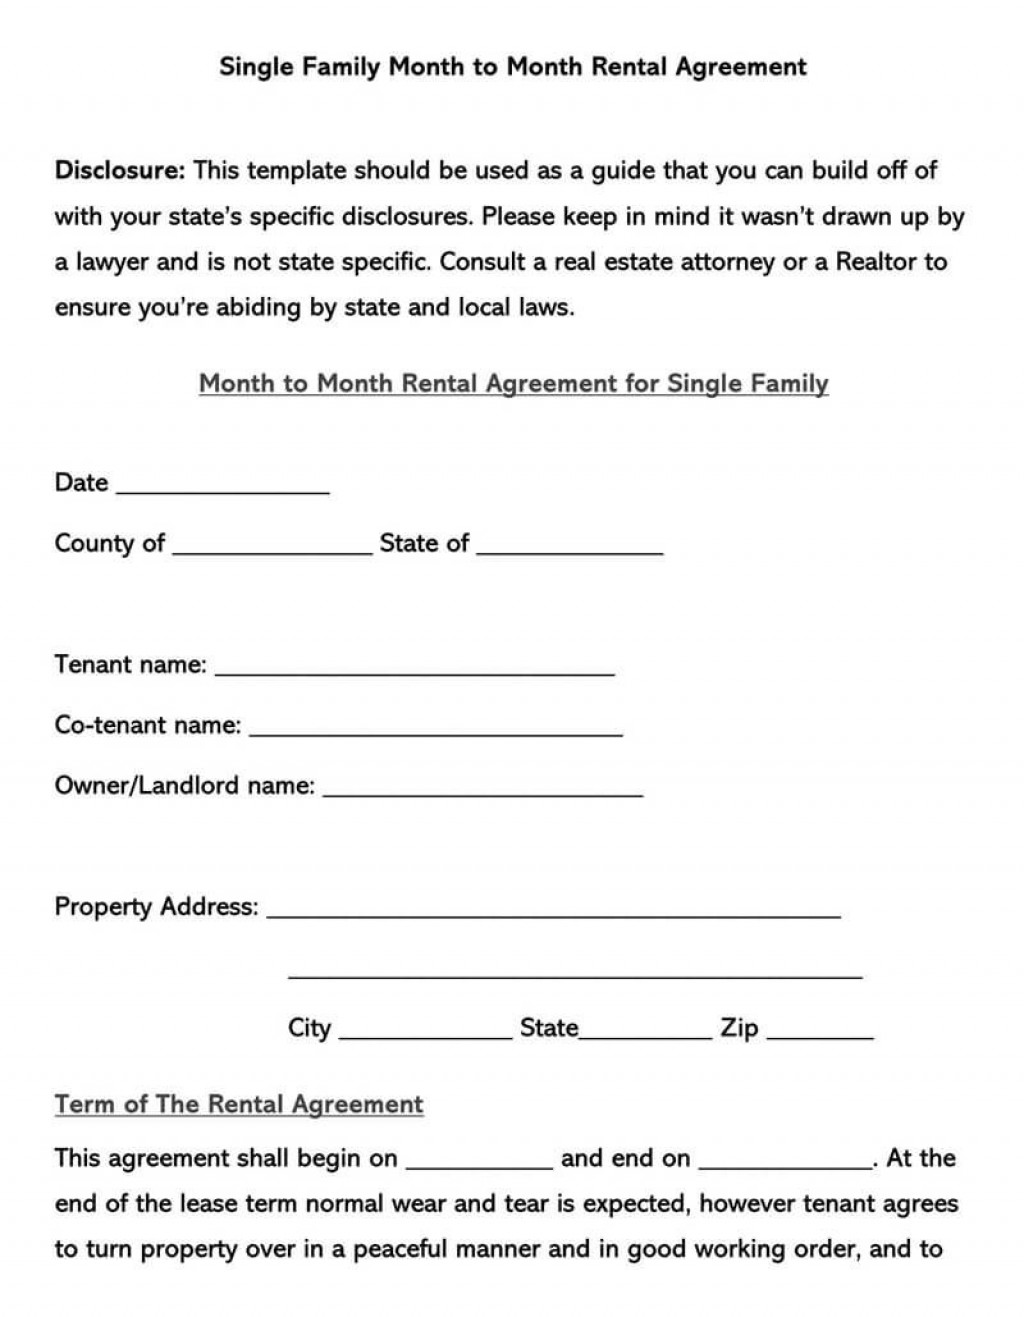 008 Excellent Rental Contract Template Free Download Image  Agreement Sample Room FormLarge